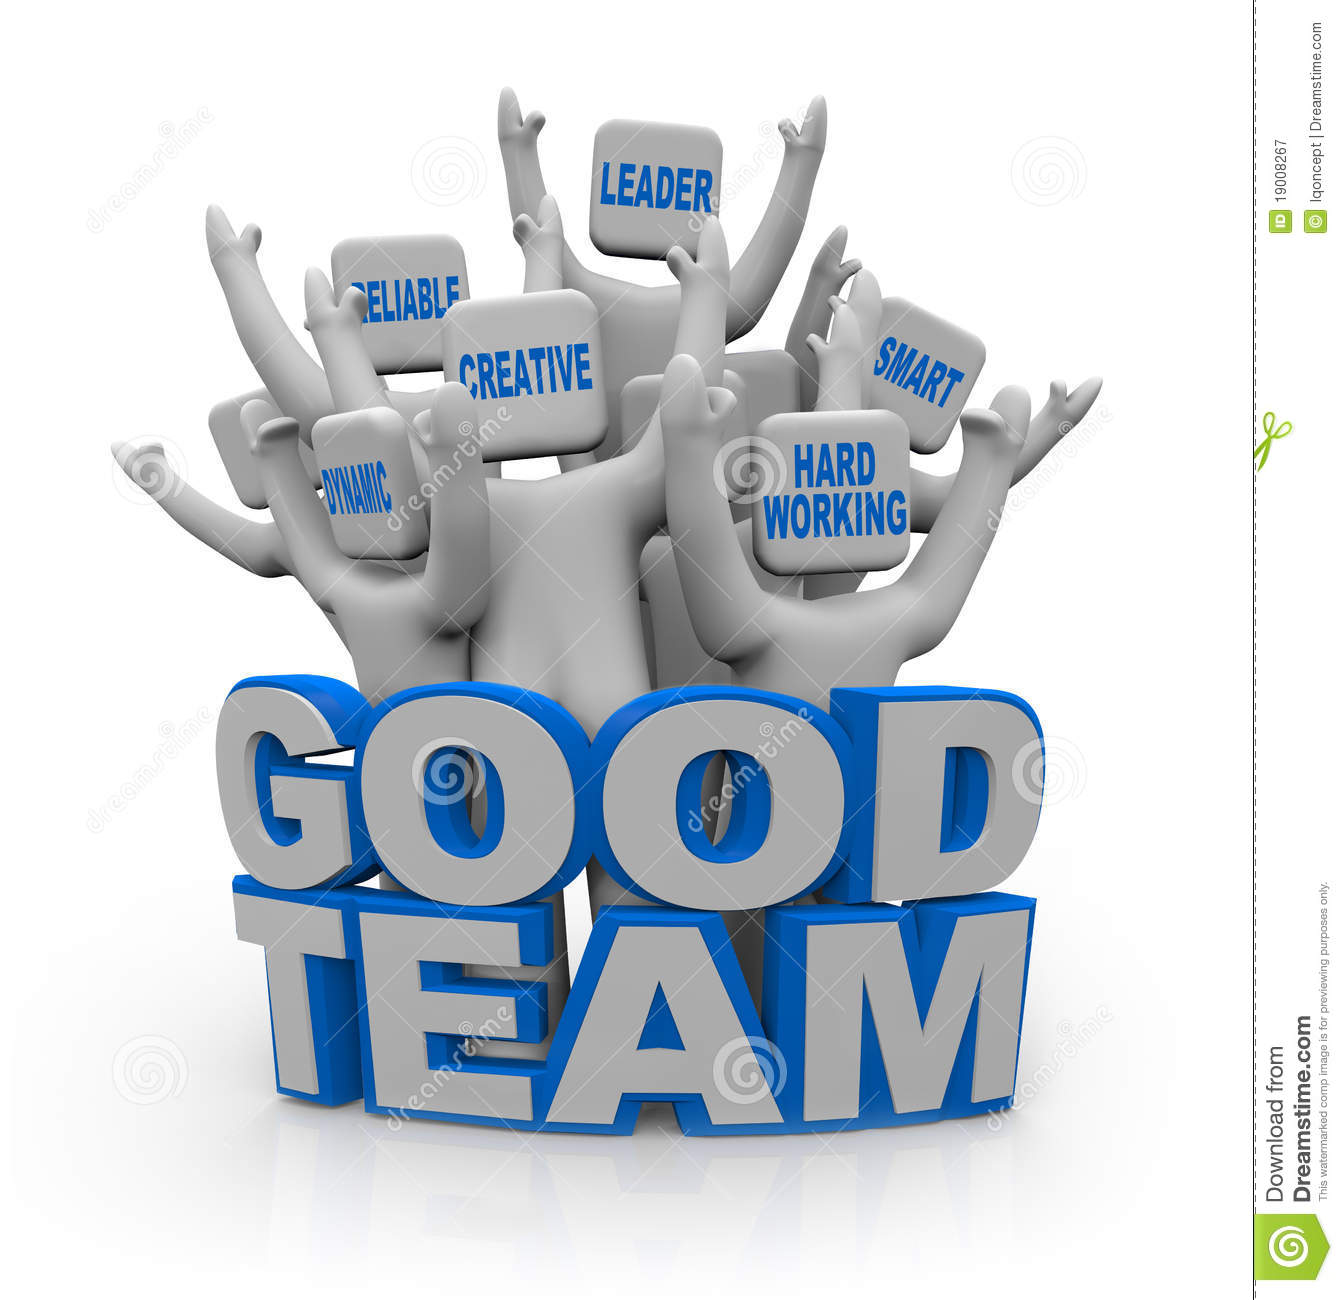 Good Team   People With Teamwork Qualities